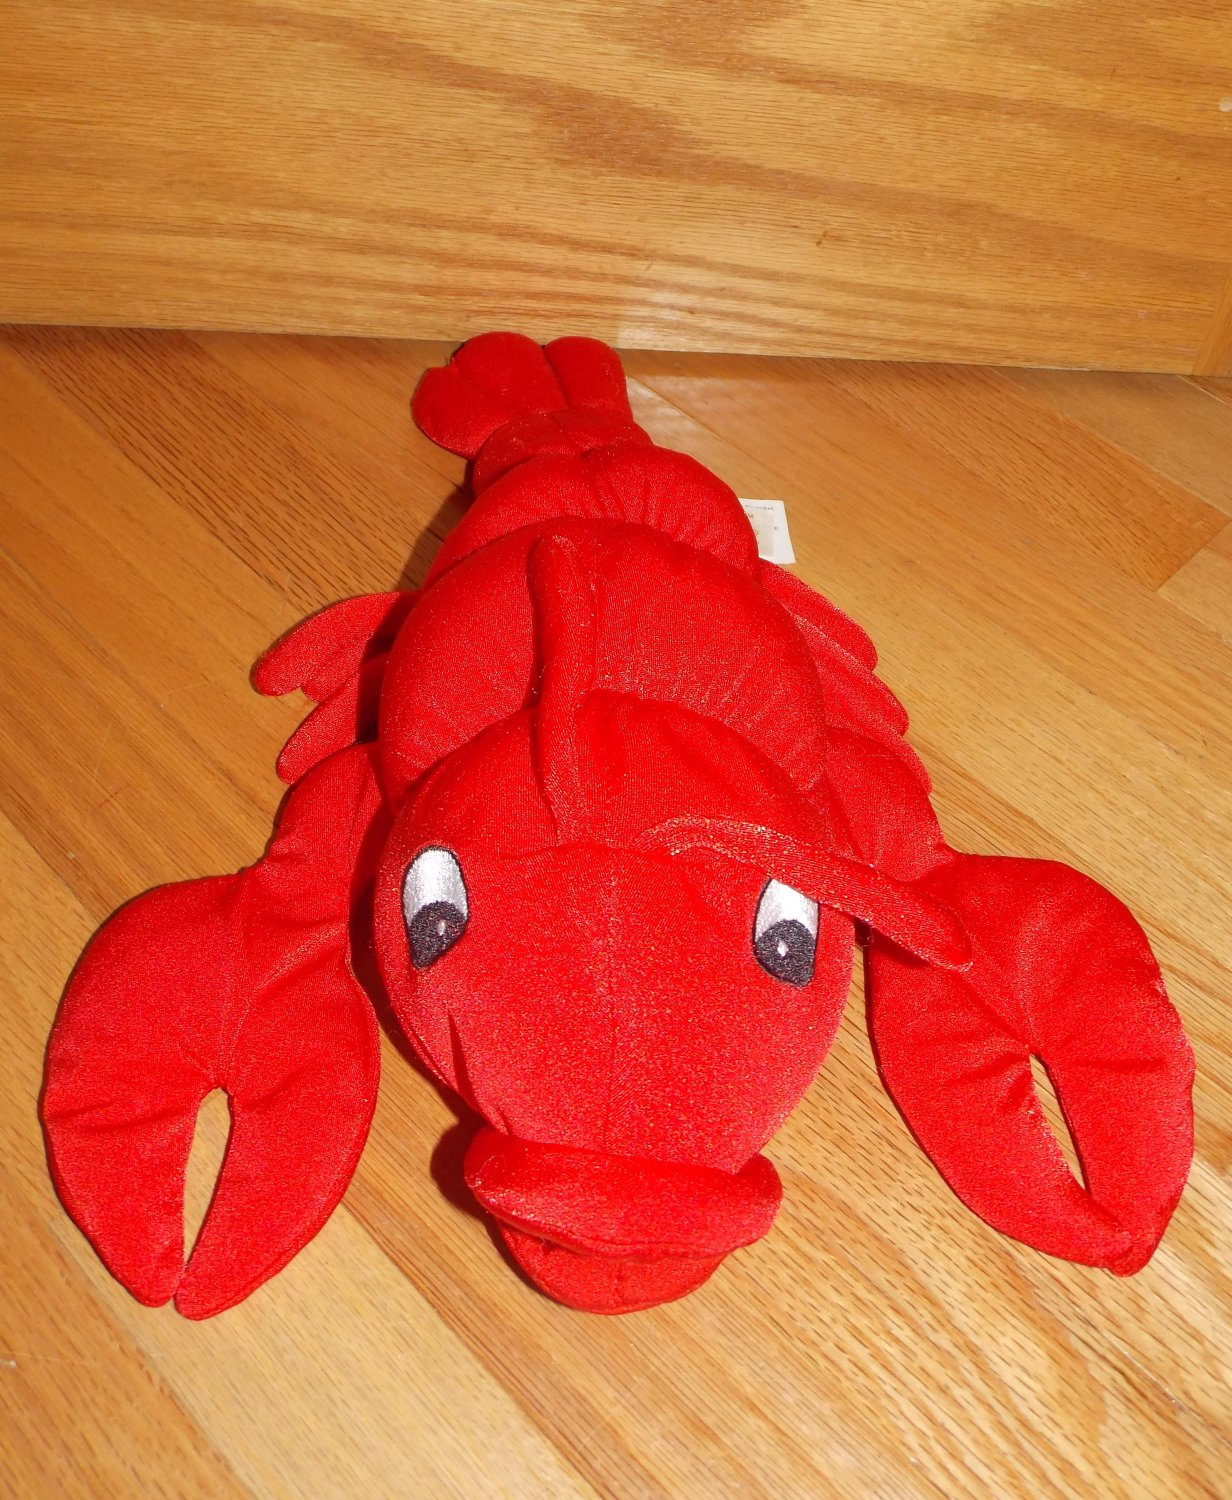 Dandee Moshi Microbead Plush Red Lobster Stitched Eyes Pillow Toy